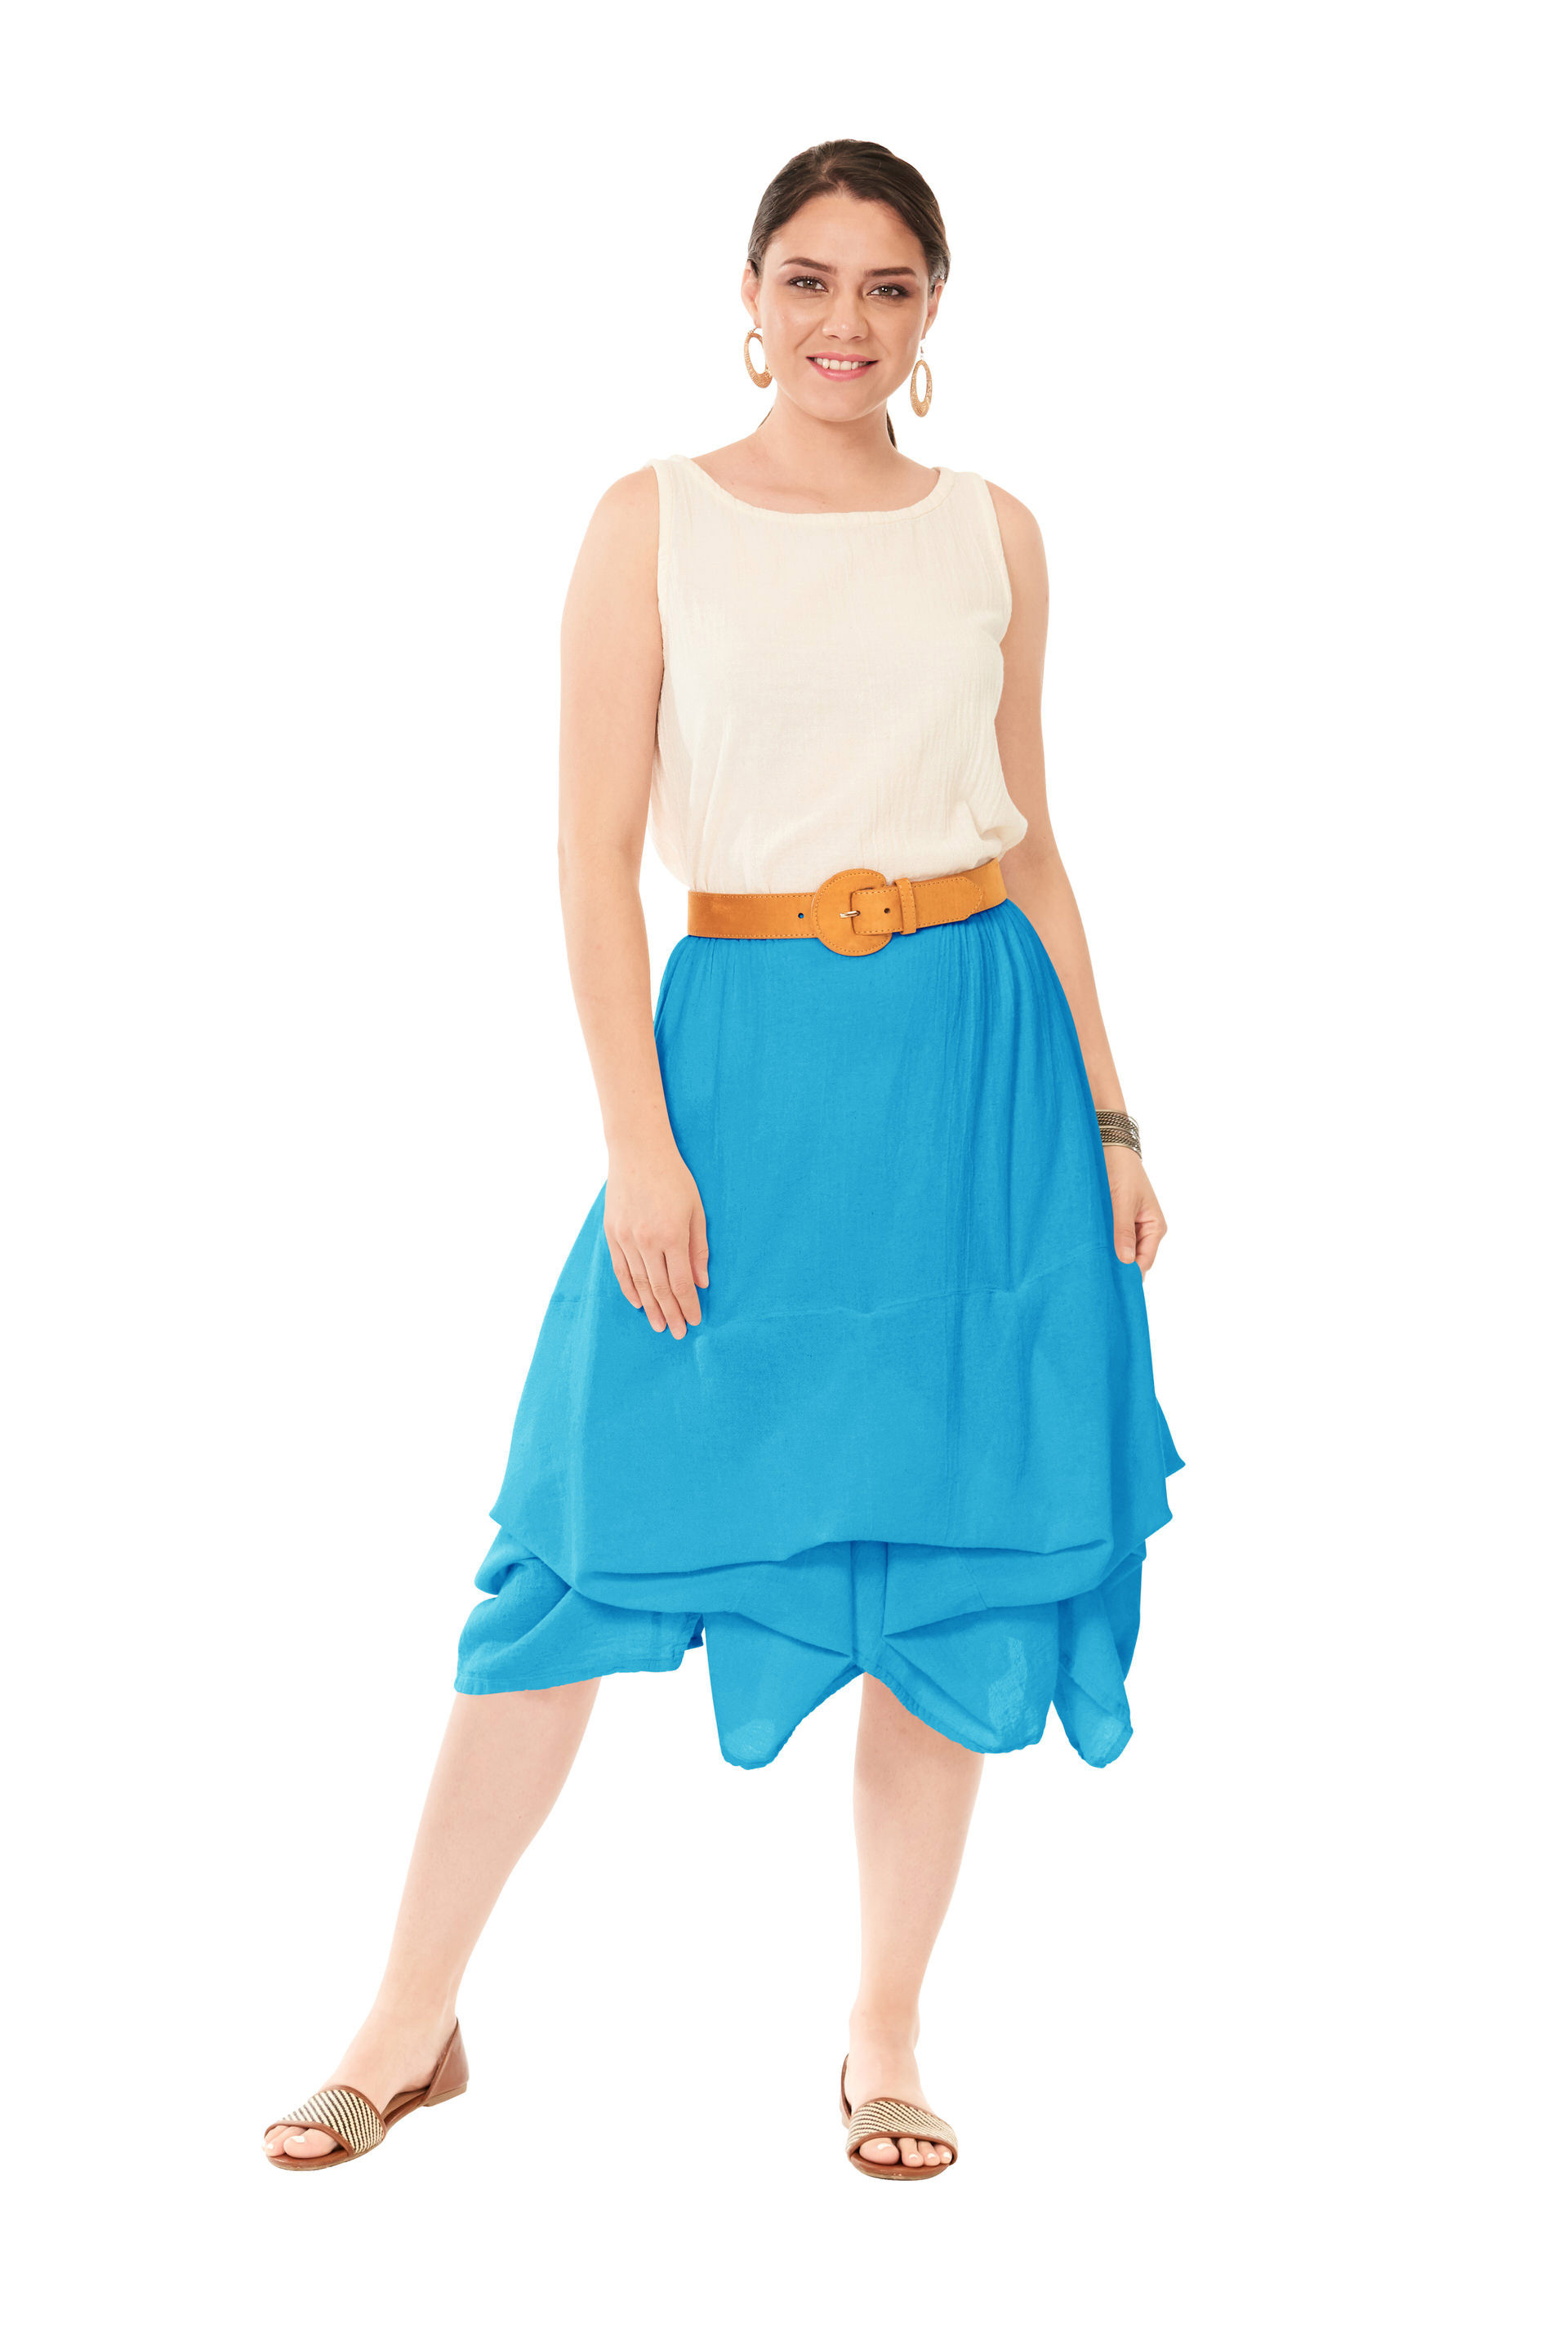 OMG - A mid length lagenlook cotton gauze skirt with adjustable layers.